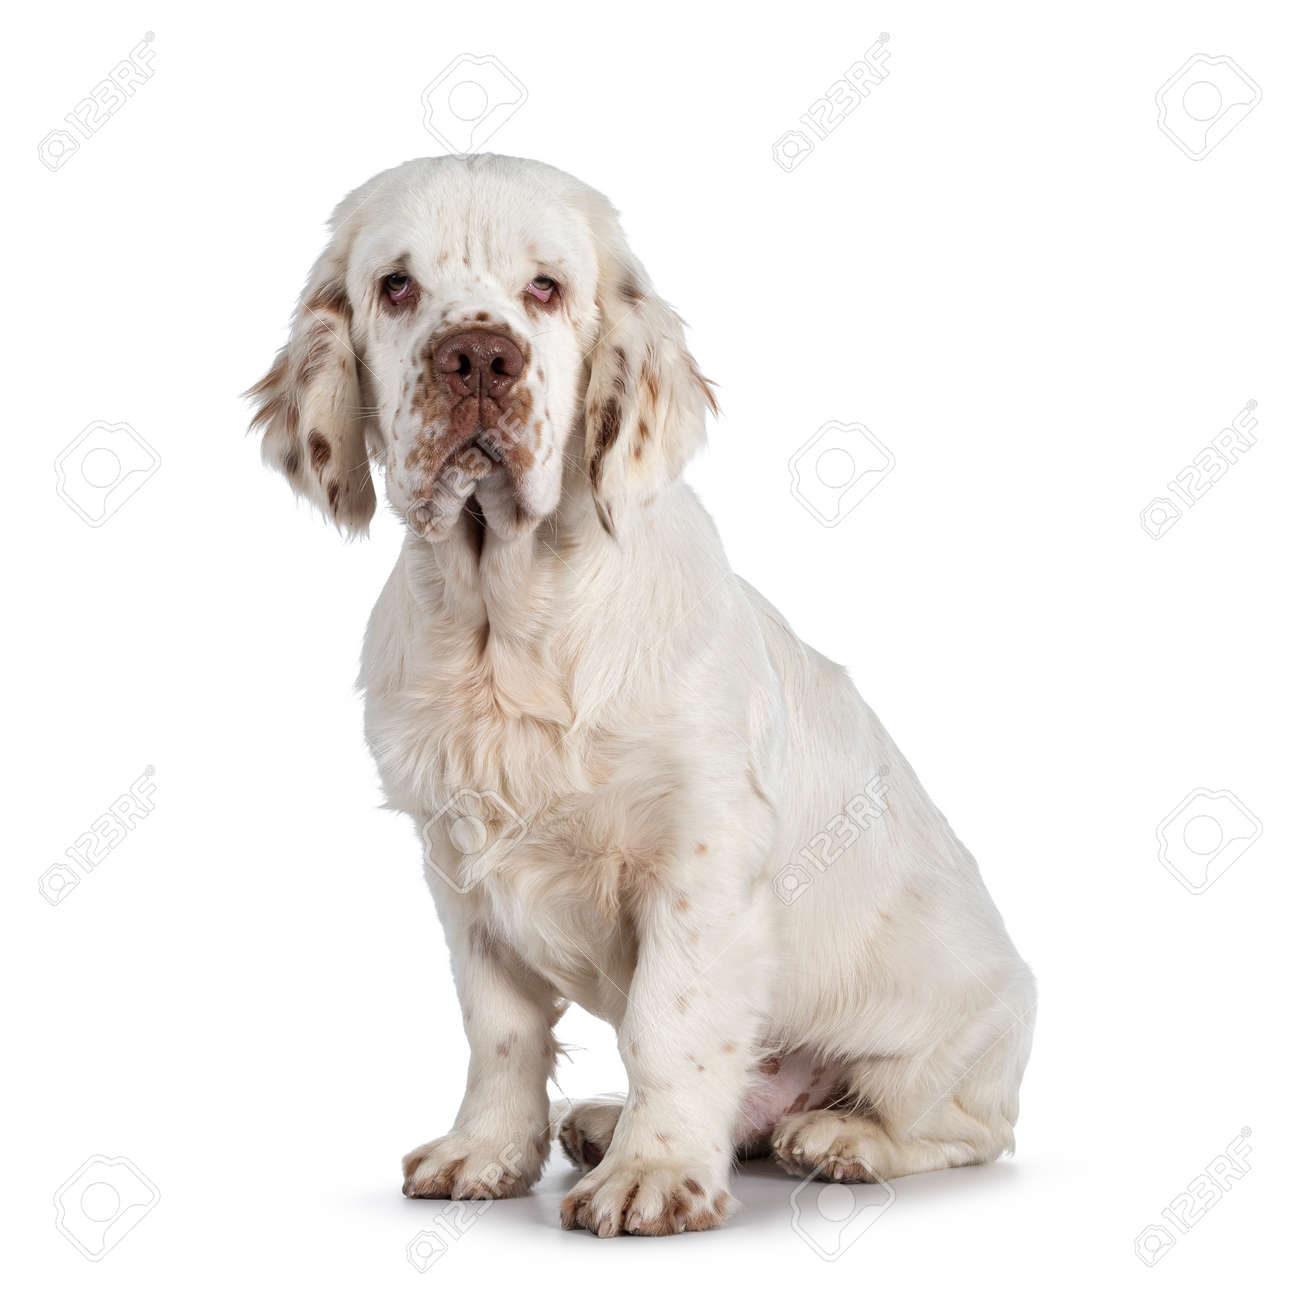 Cute Clumber Spaniel dog puppy, sitting up side ways. Looking towards camera with the typical droopy eyes. Isolated on a white background. - 173357249